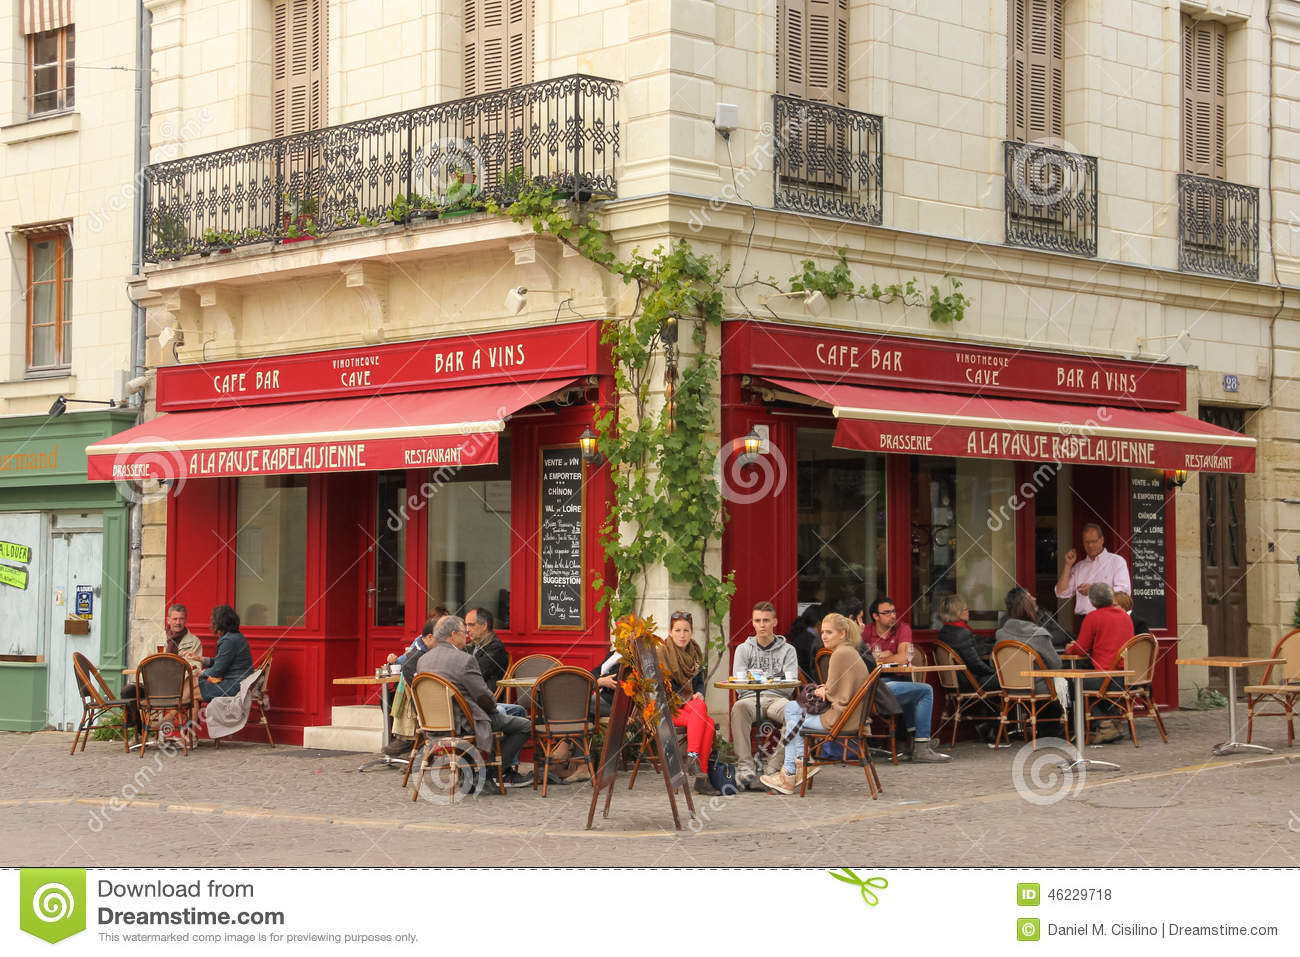 Typical cafe bar chinon france editorial stock photo - Image of bar ...